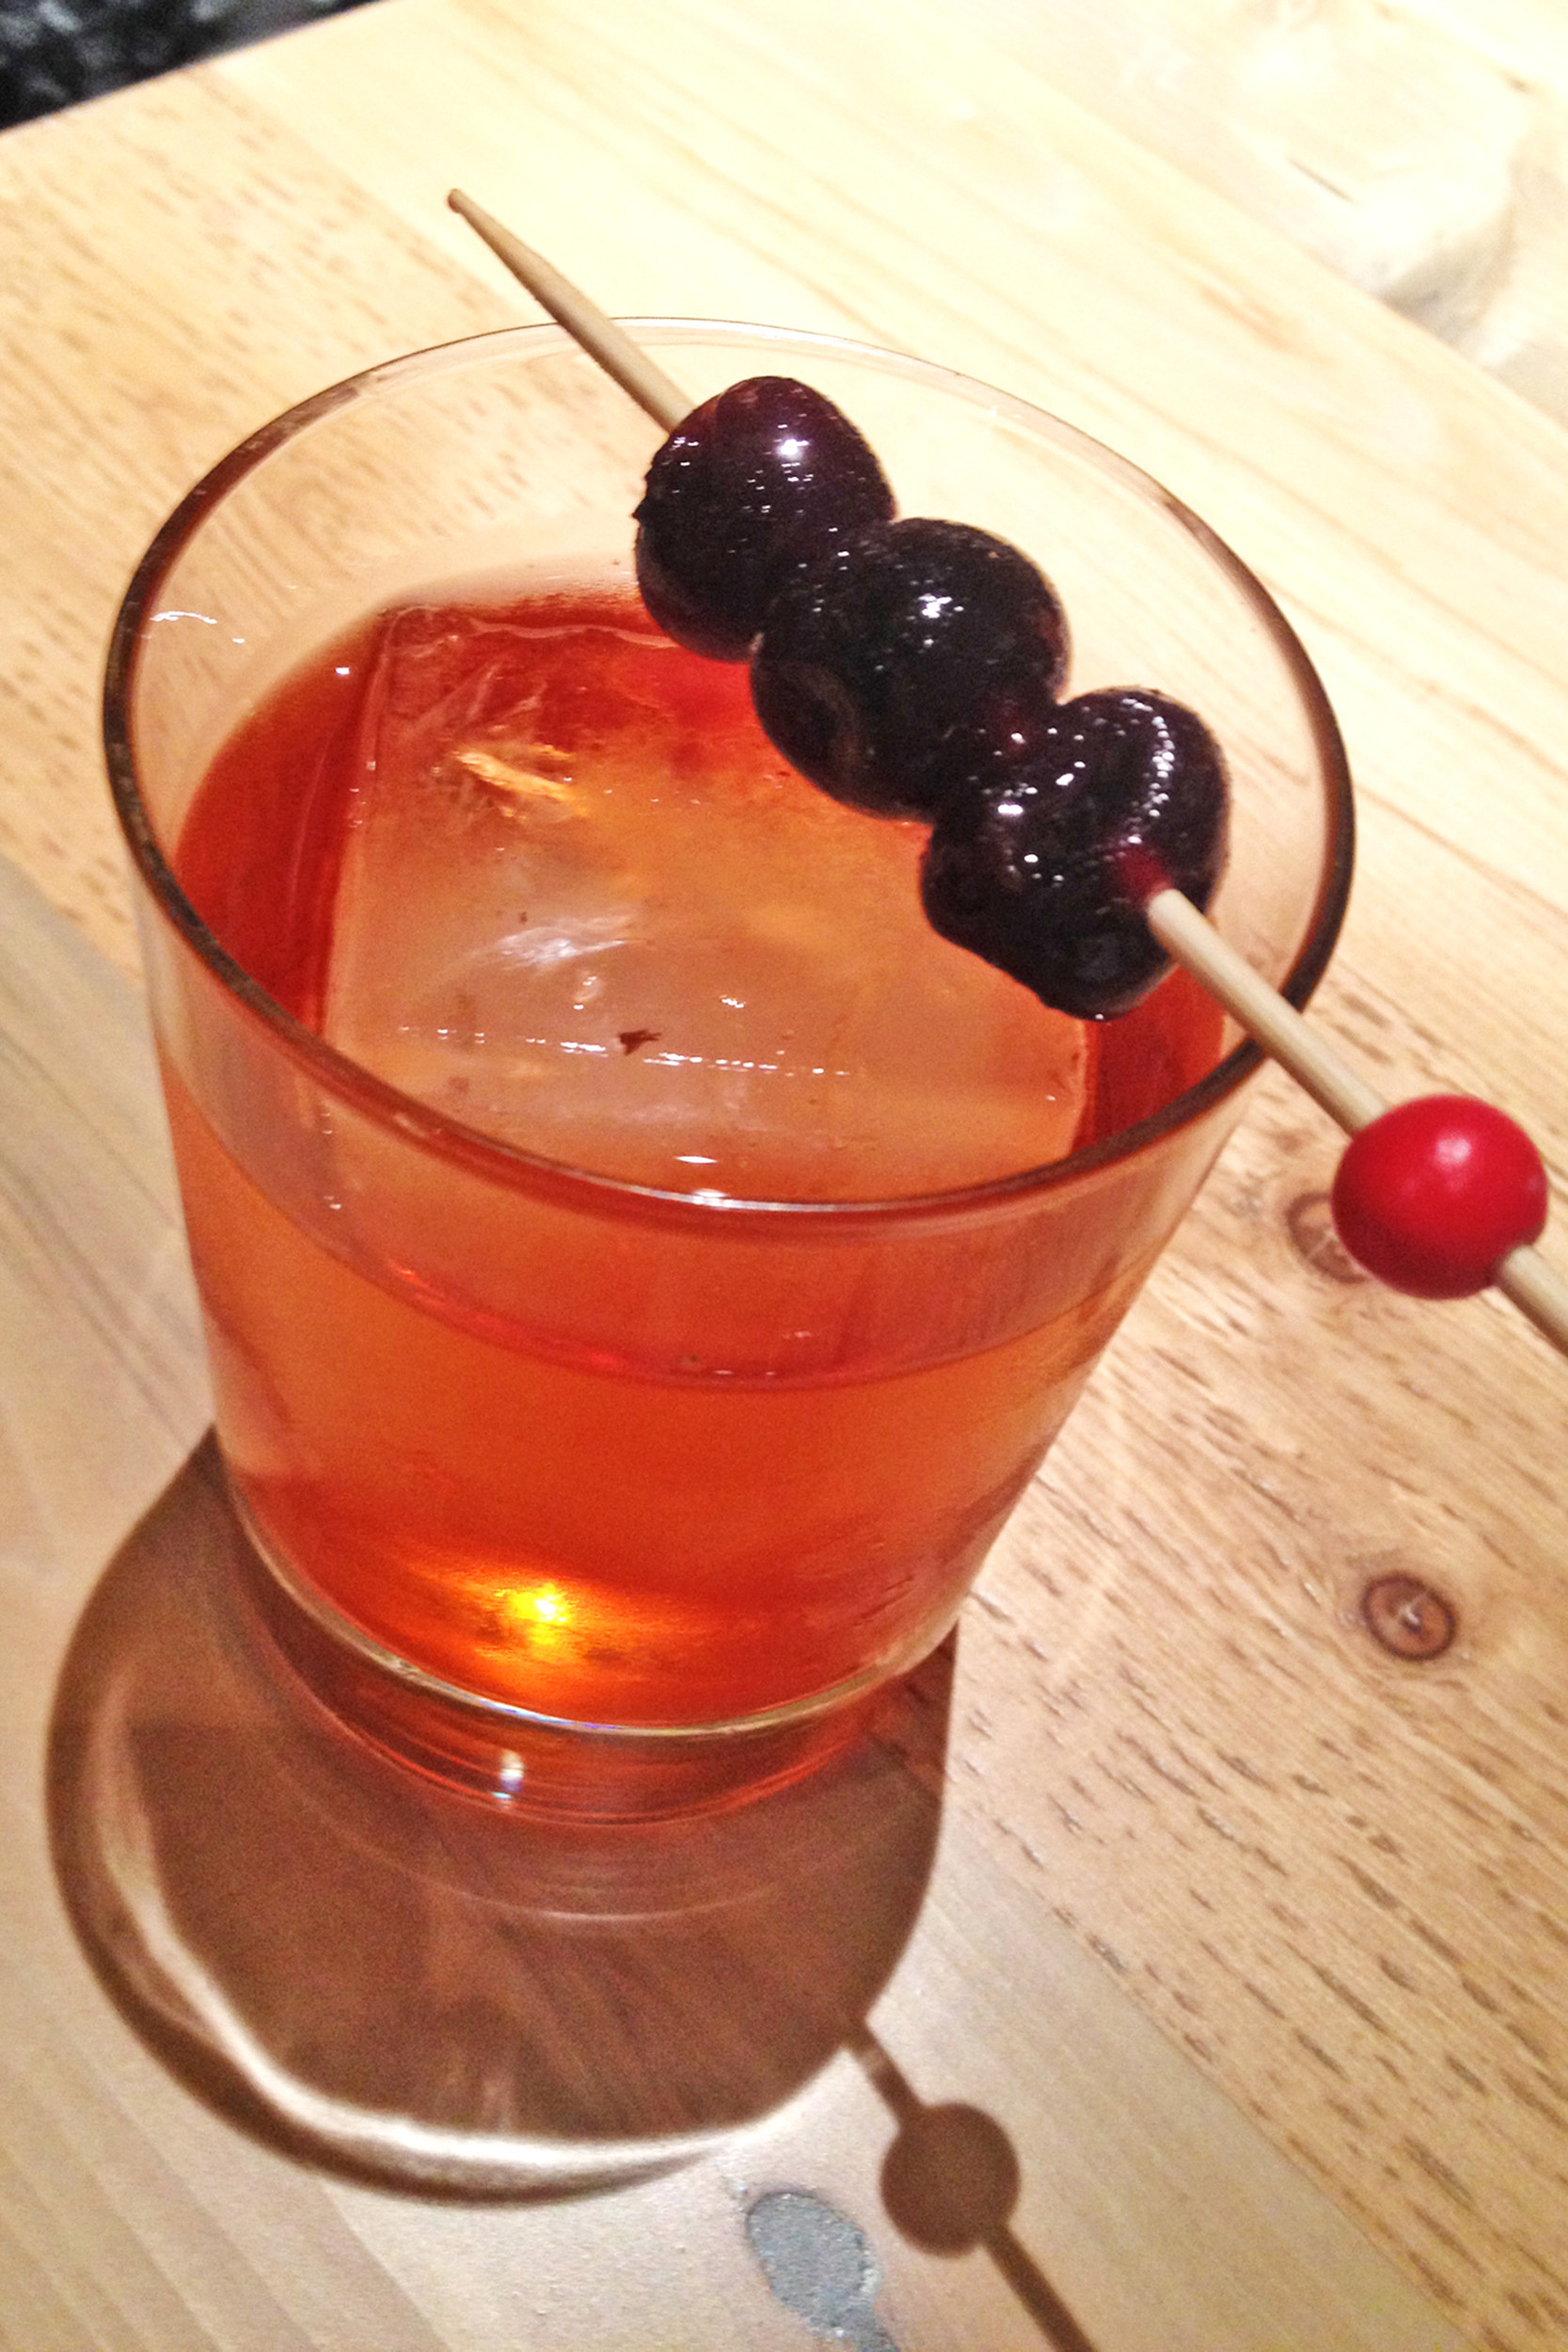 The Walk Don't Run is crafted from Four Roses Yellow Barrel bourbon, Aperol, Cocchi Americano and barrel-aged bitters, then topped with cherries.